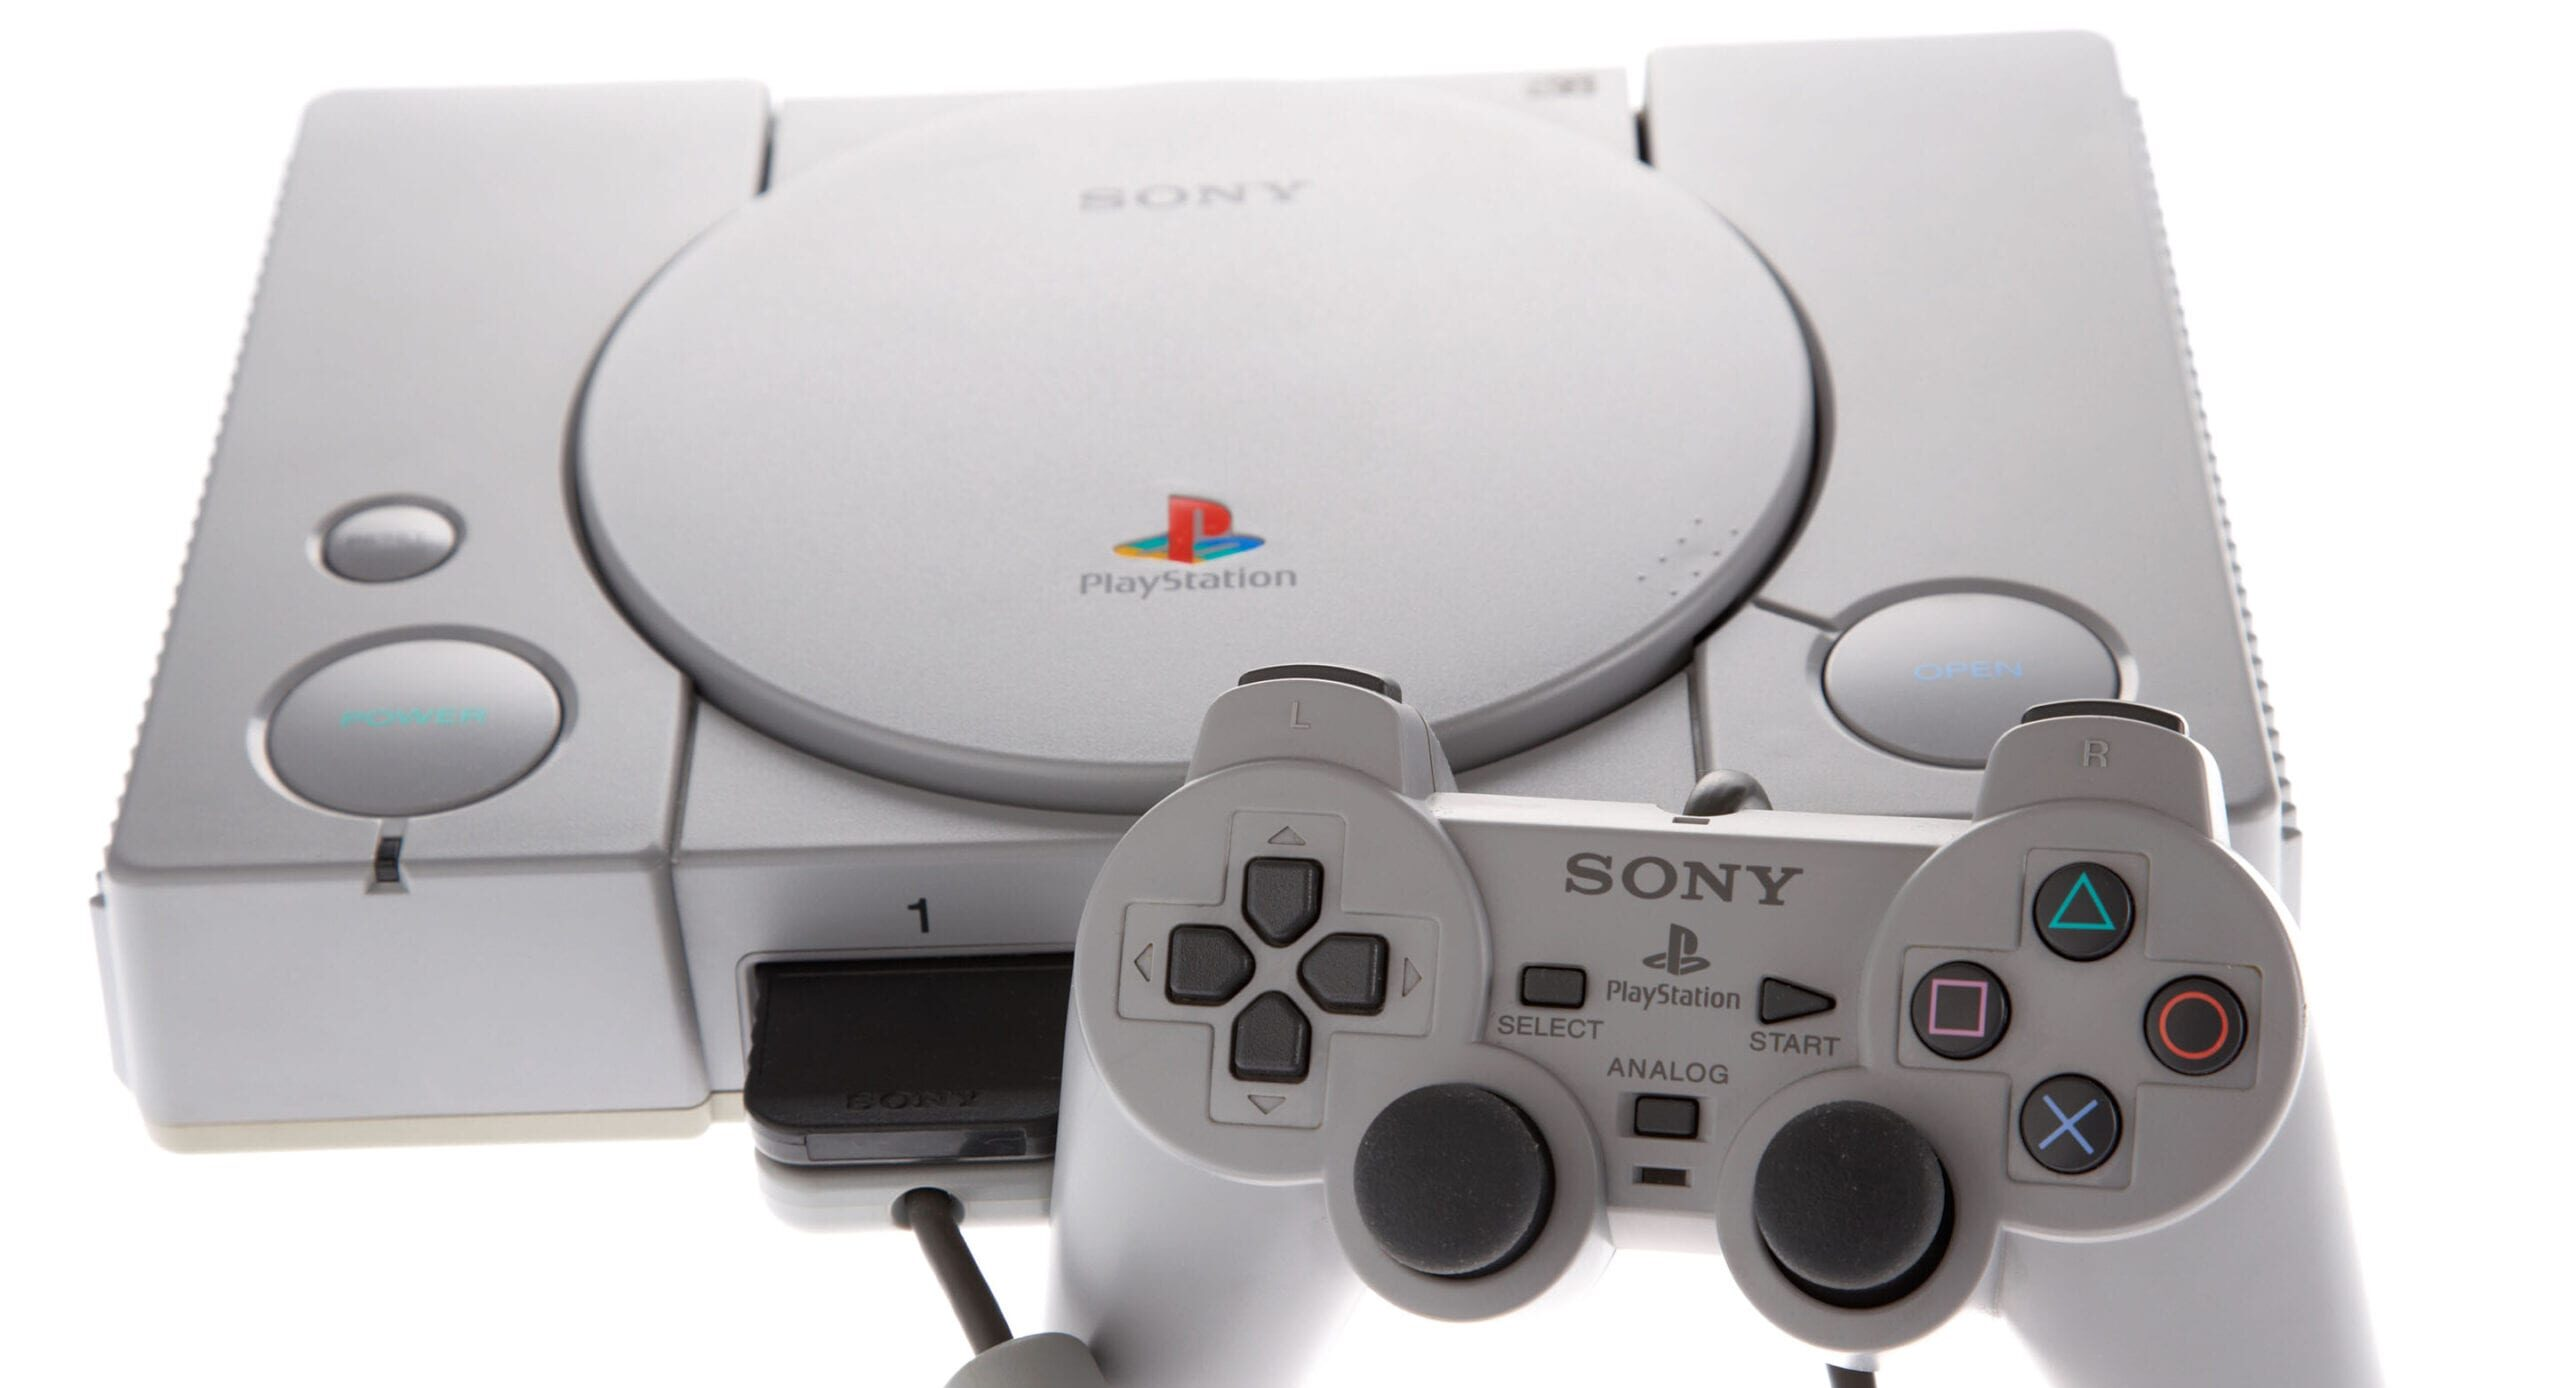 E3 Top 10 The PlayStation is 299 1995